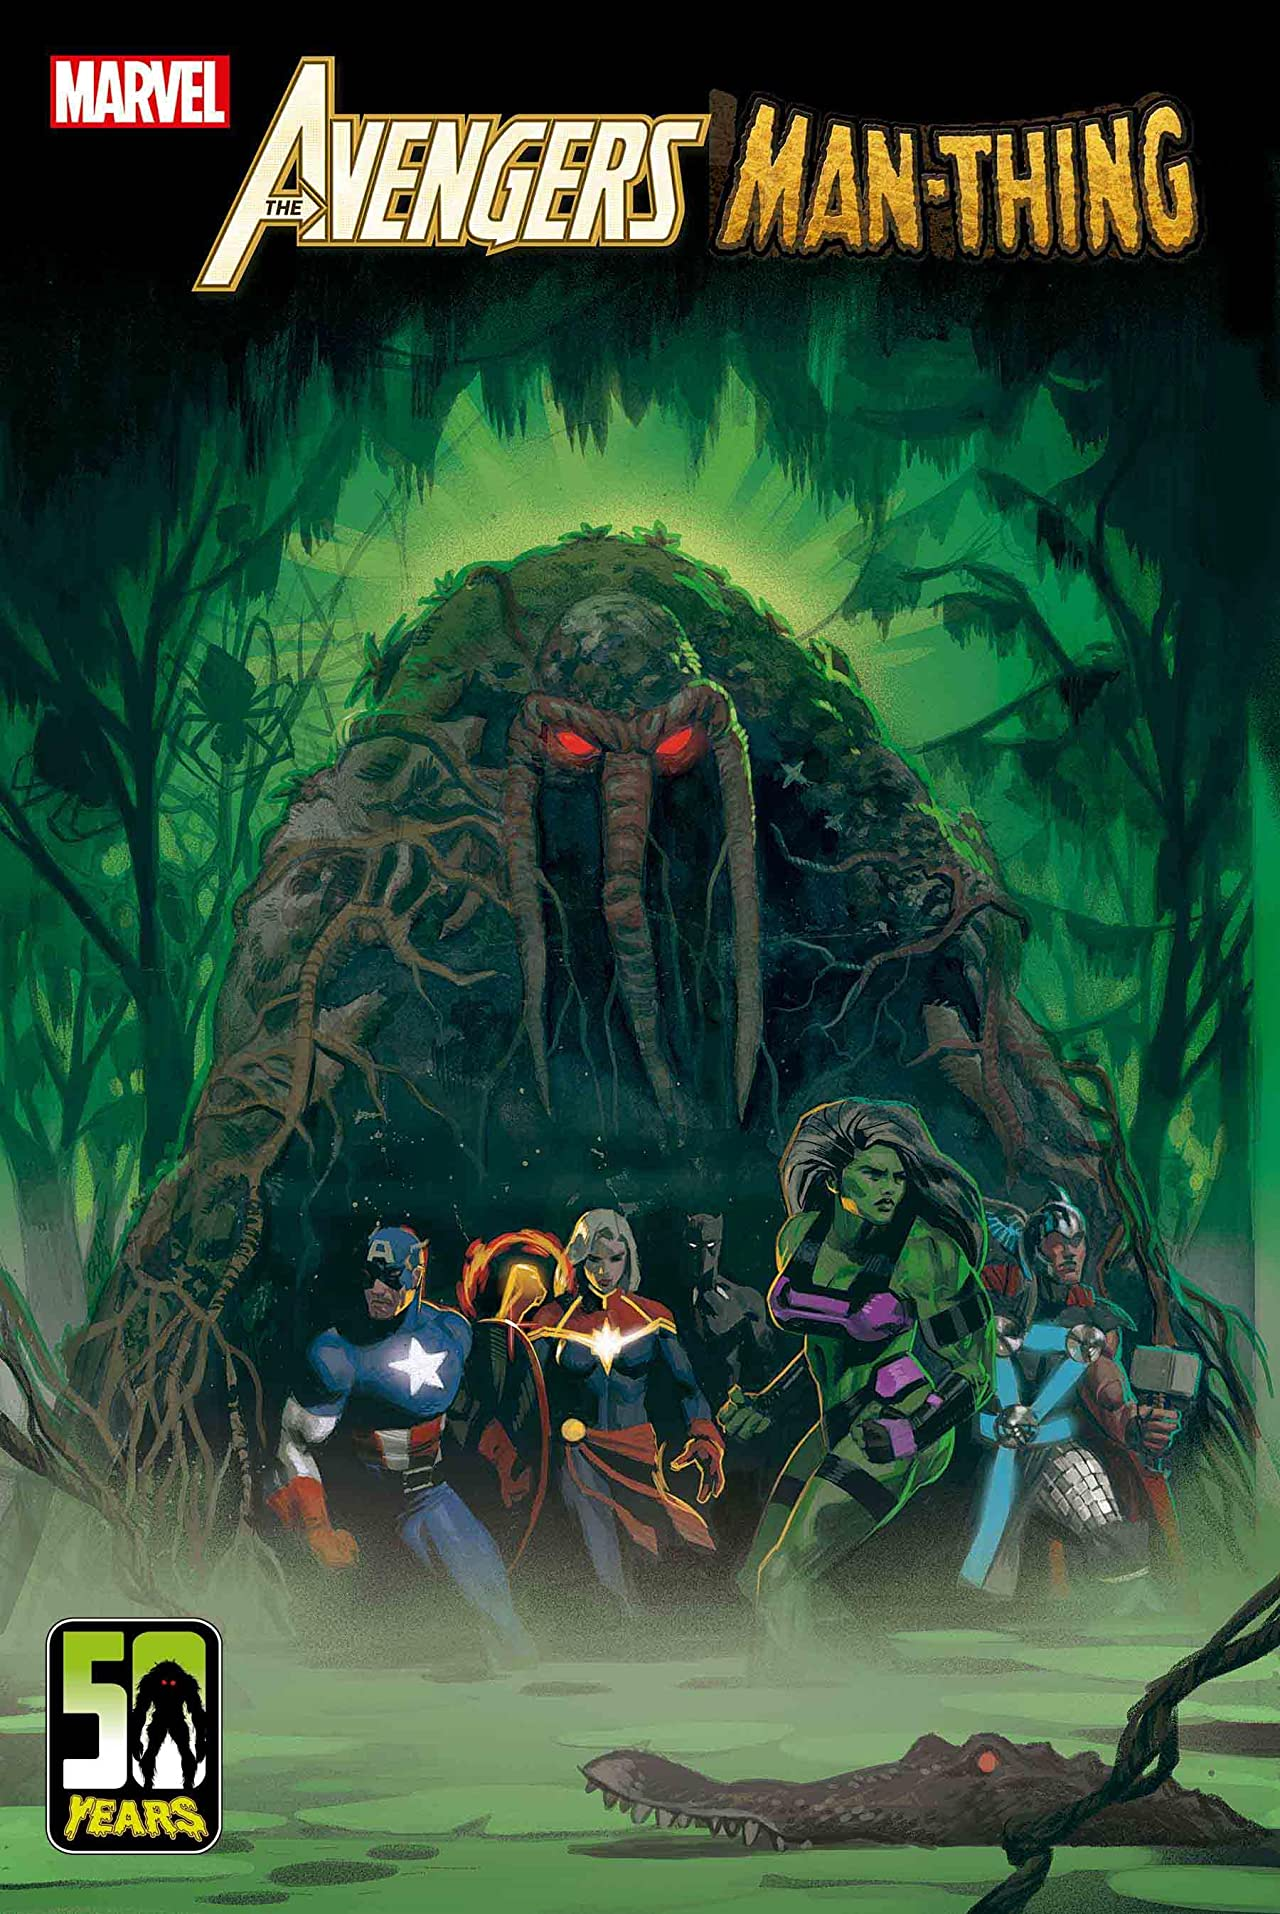 Marvel First Look: Avengers: Curse of the Man-Thing #1